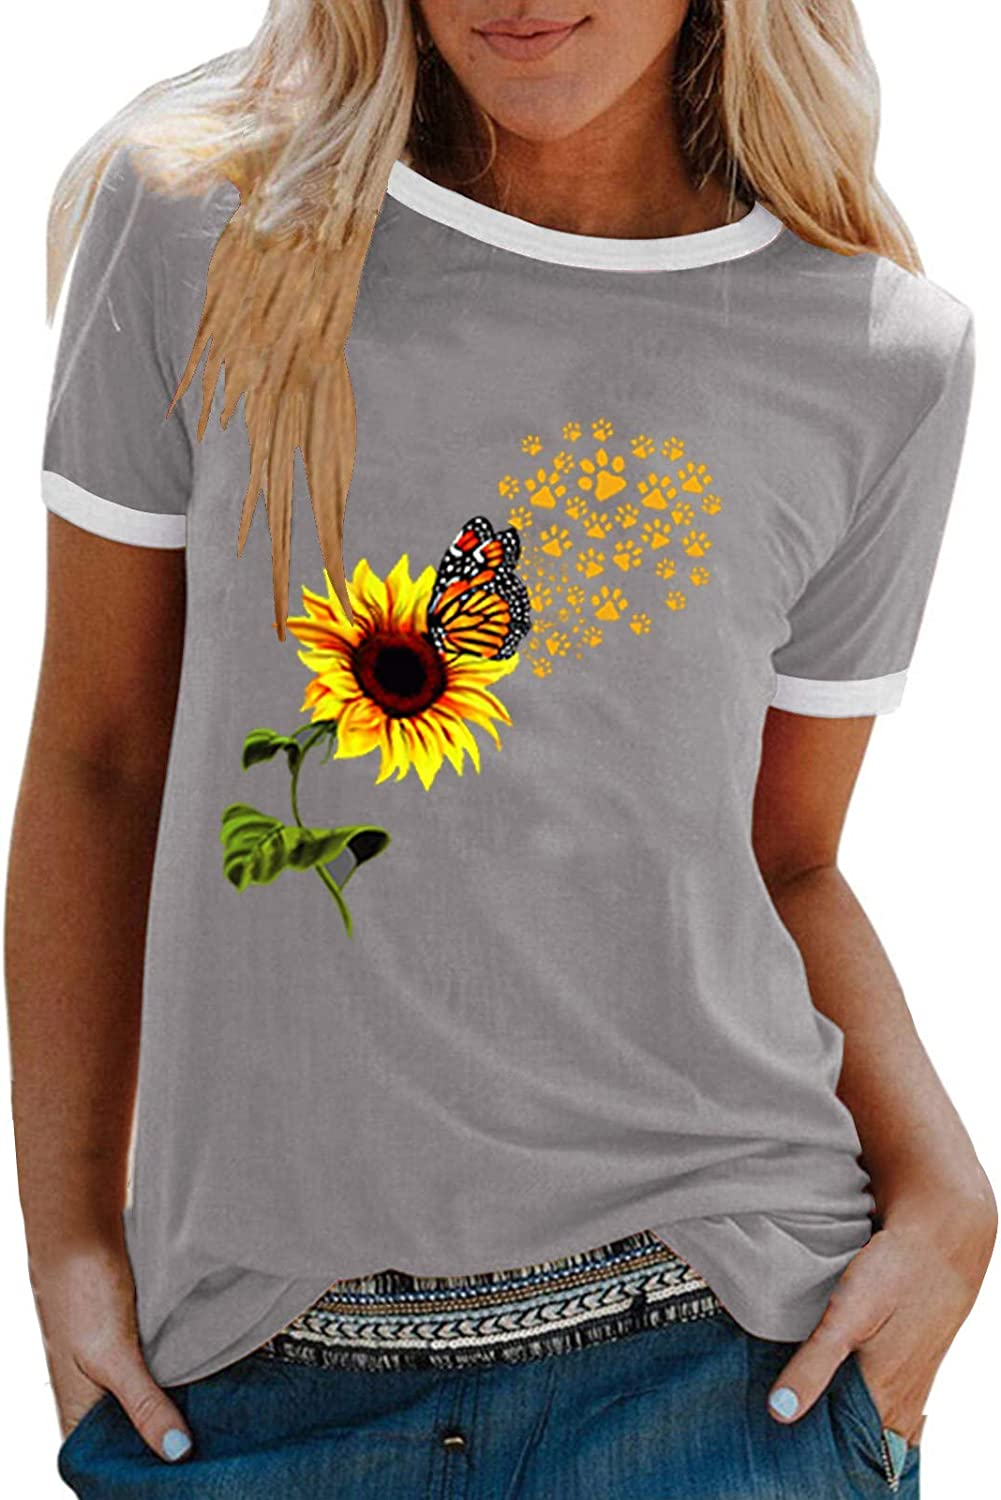 Awrang Summer Tops for Women Casual Short Sleeve Loose Fit Sunflower Graphic Tees Vintage Shirts Blouses